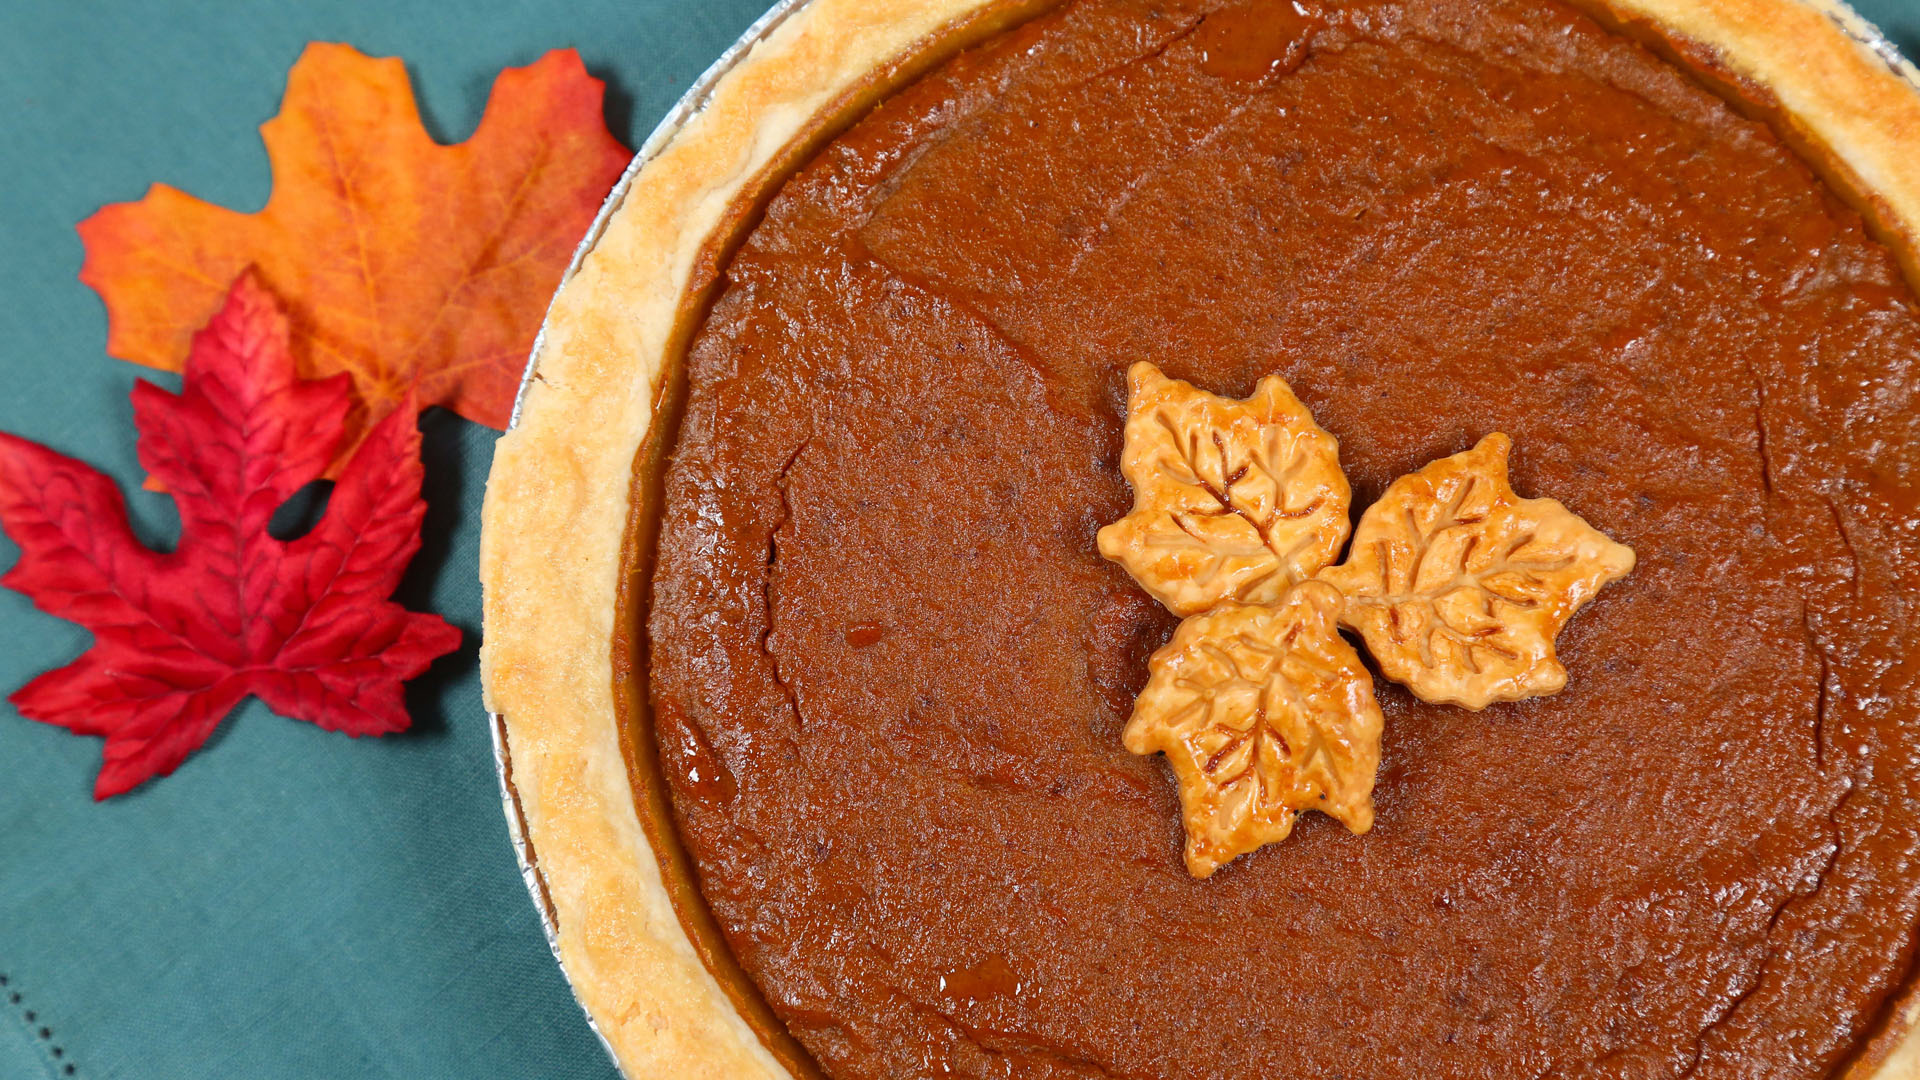 Spiced-Maple-Pumpkin-Pie 16x9